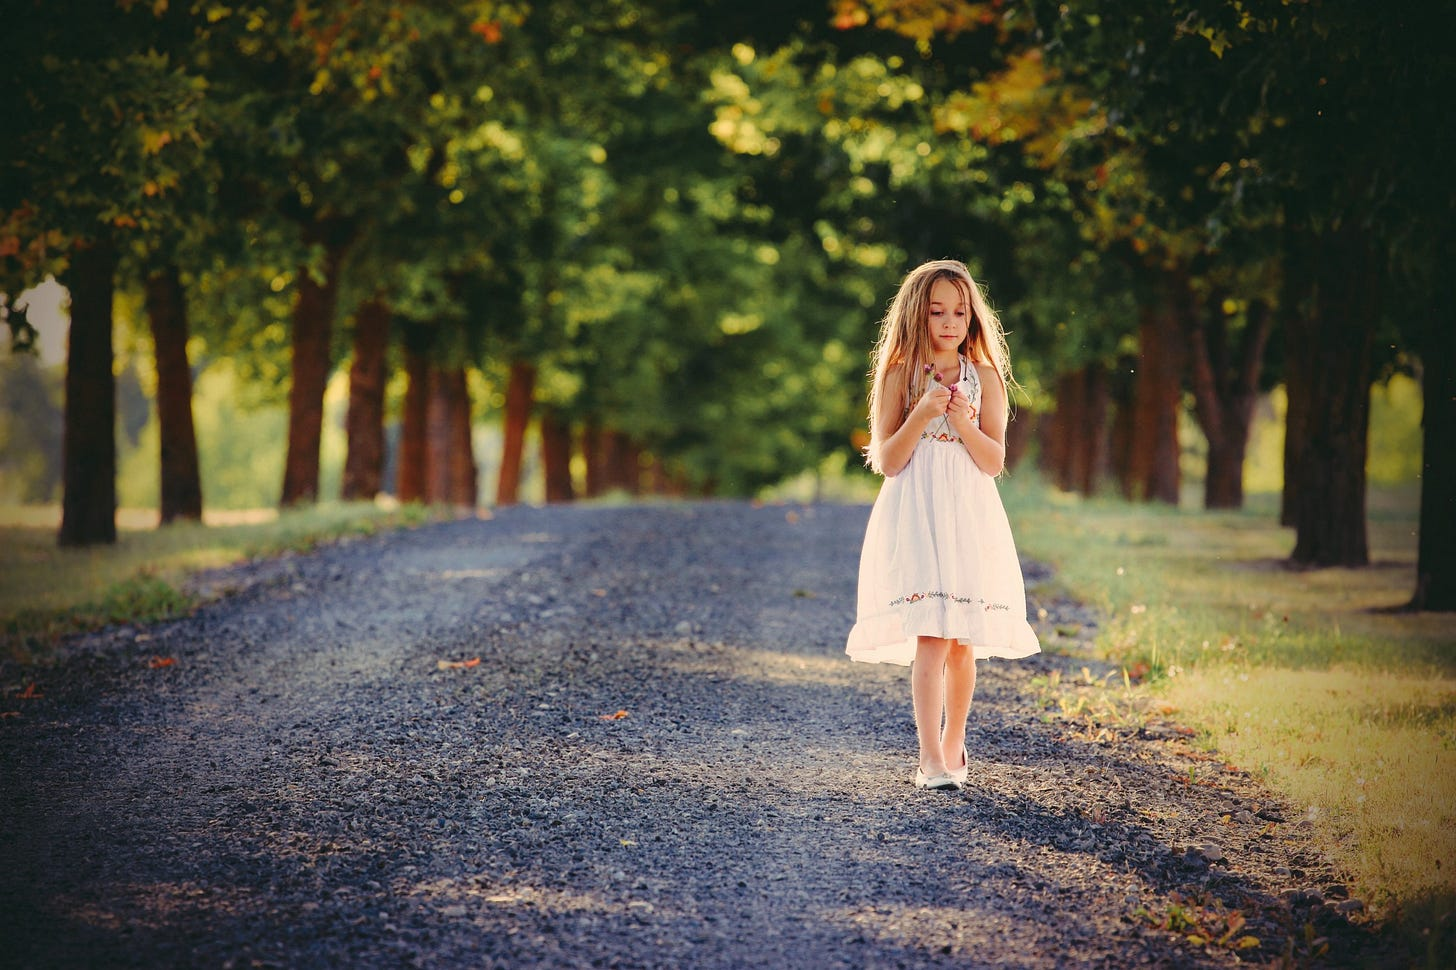 Young girl walking down a country road wearing a dress.